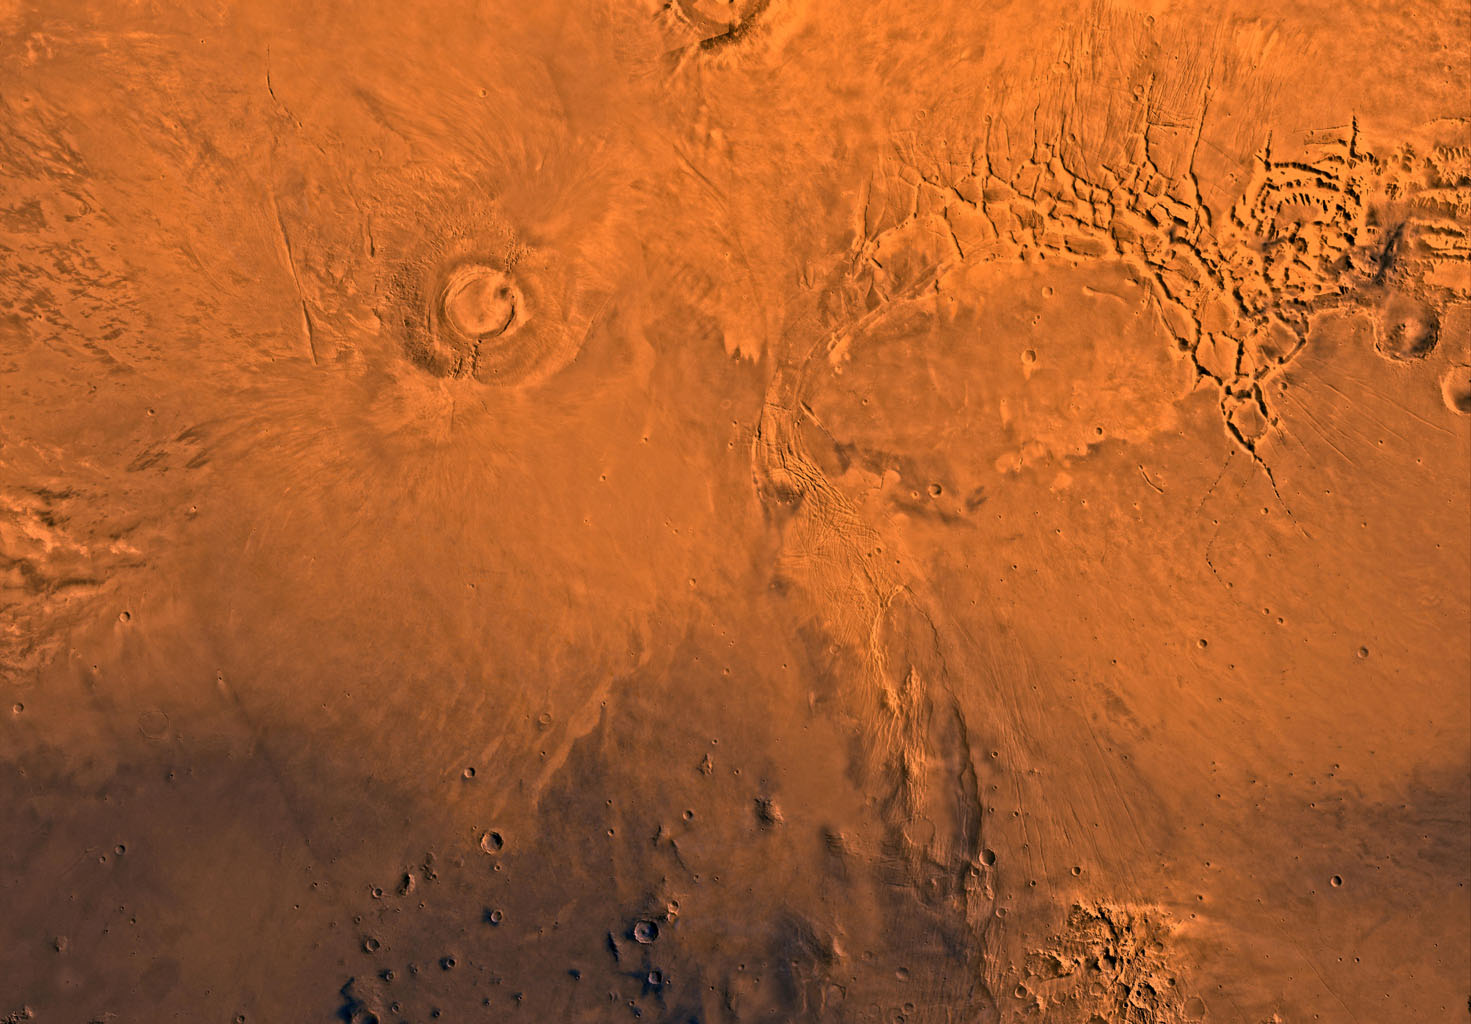 Mars digital-image mosaic merged with color of the MC-17 quadrangle, Phoenicis Lacus region of Mars. This image is from NASA's Viking Orbiter 1.